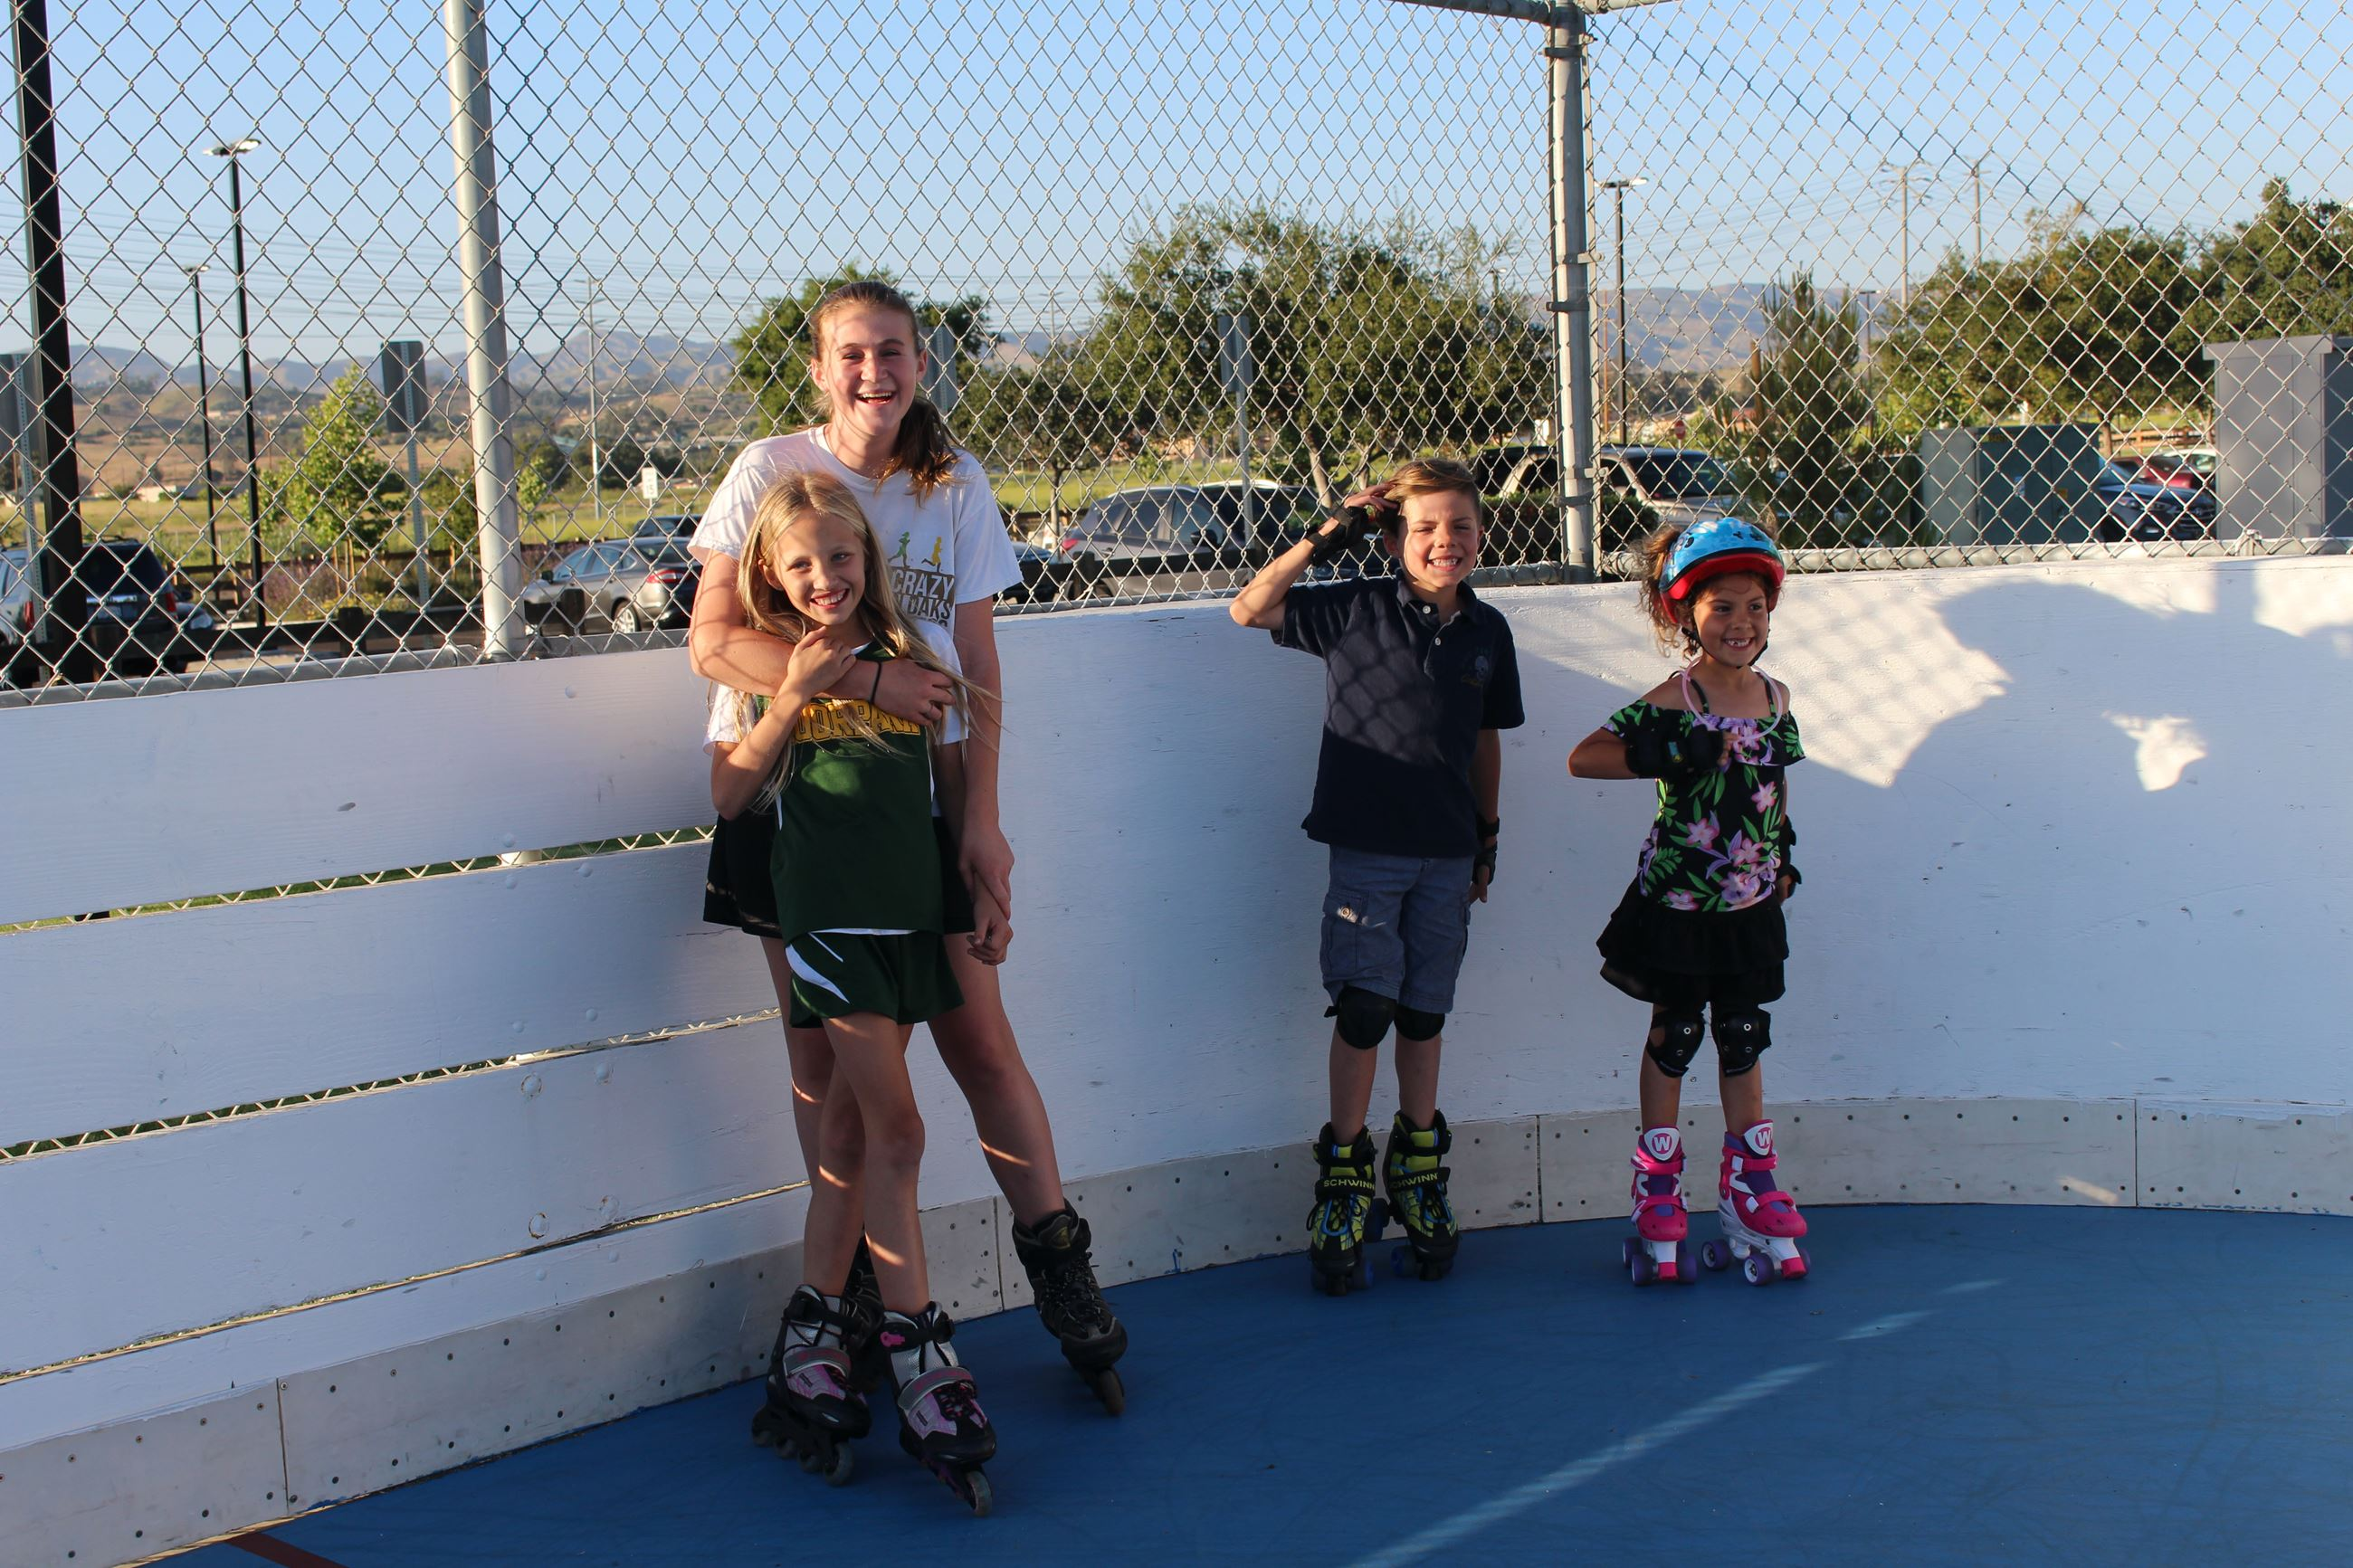 4 children roller skating